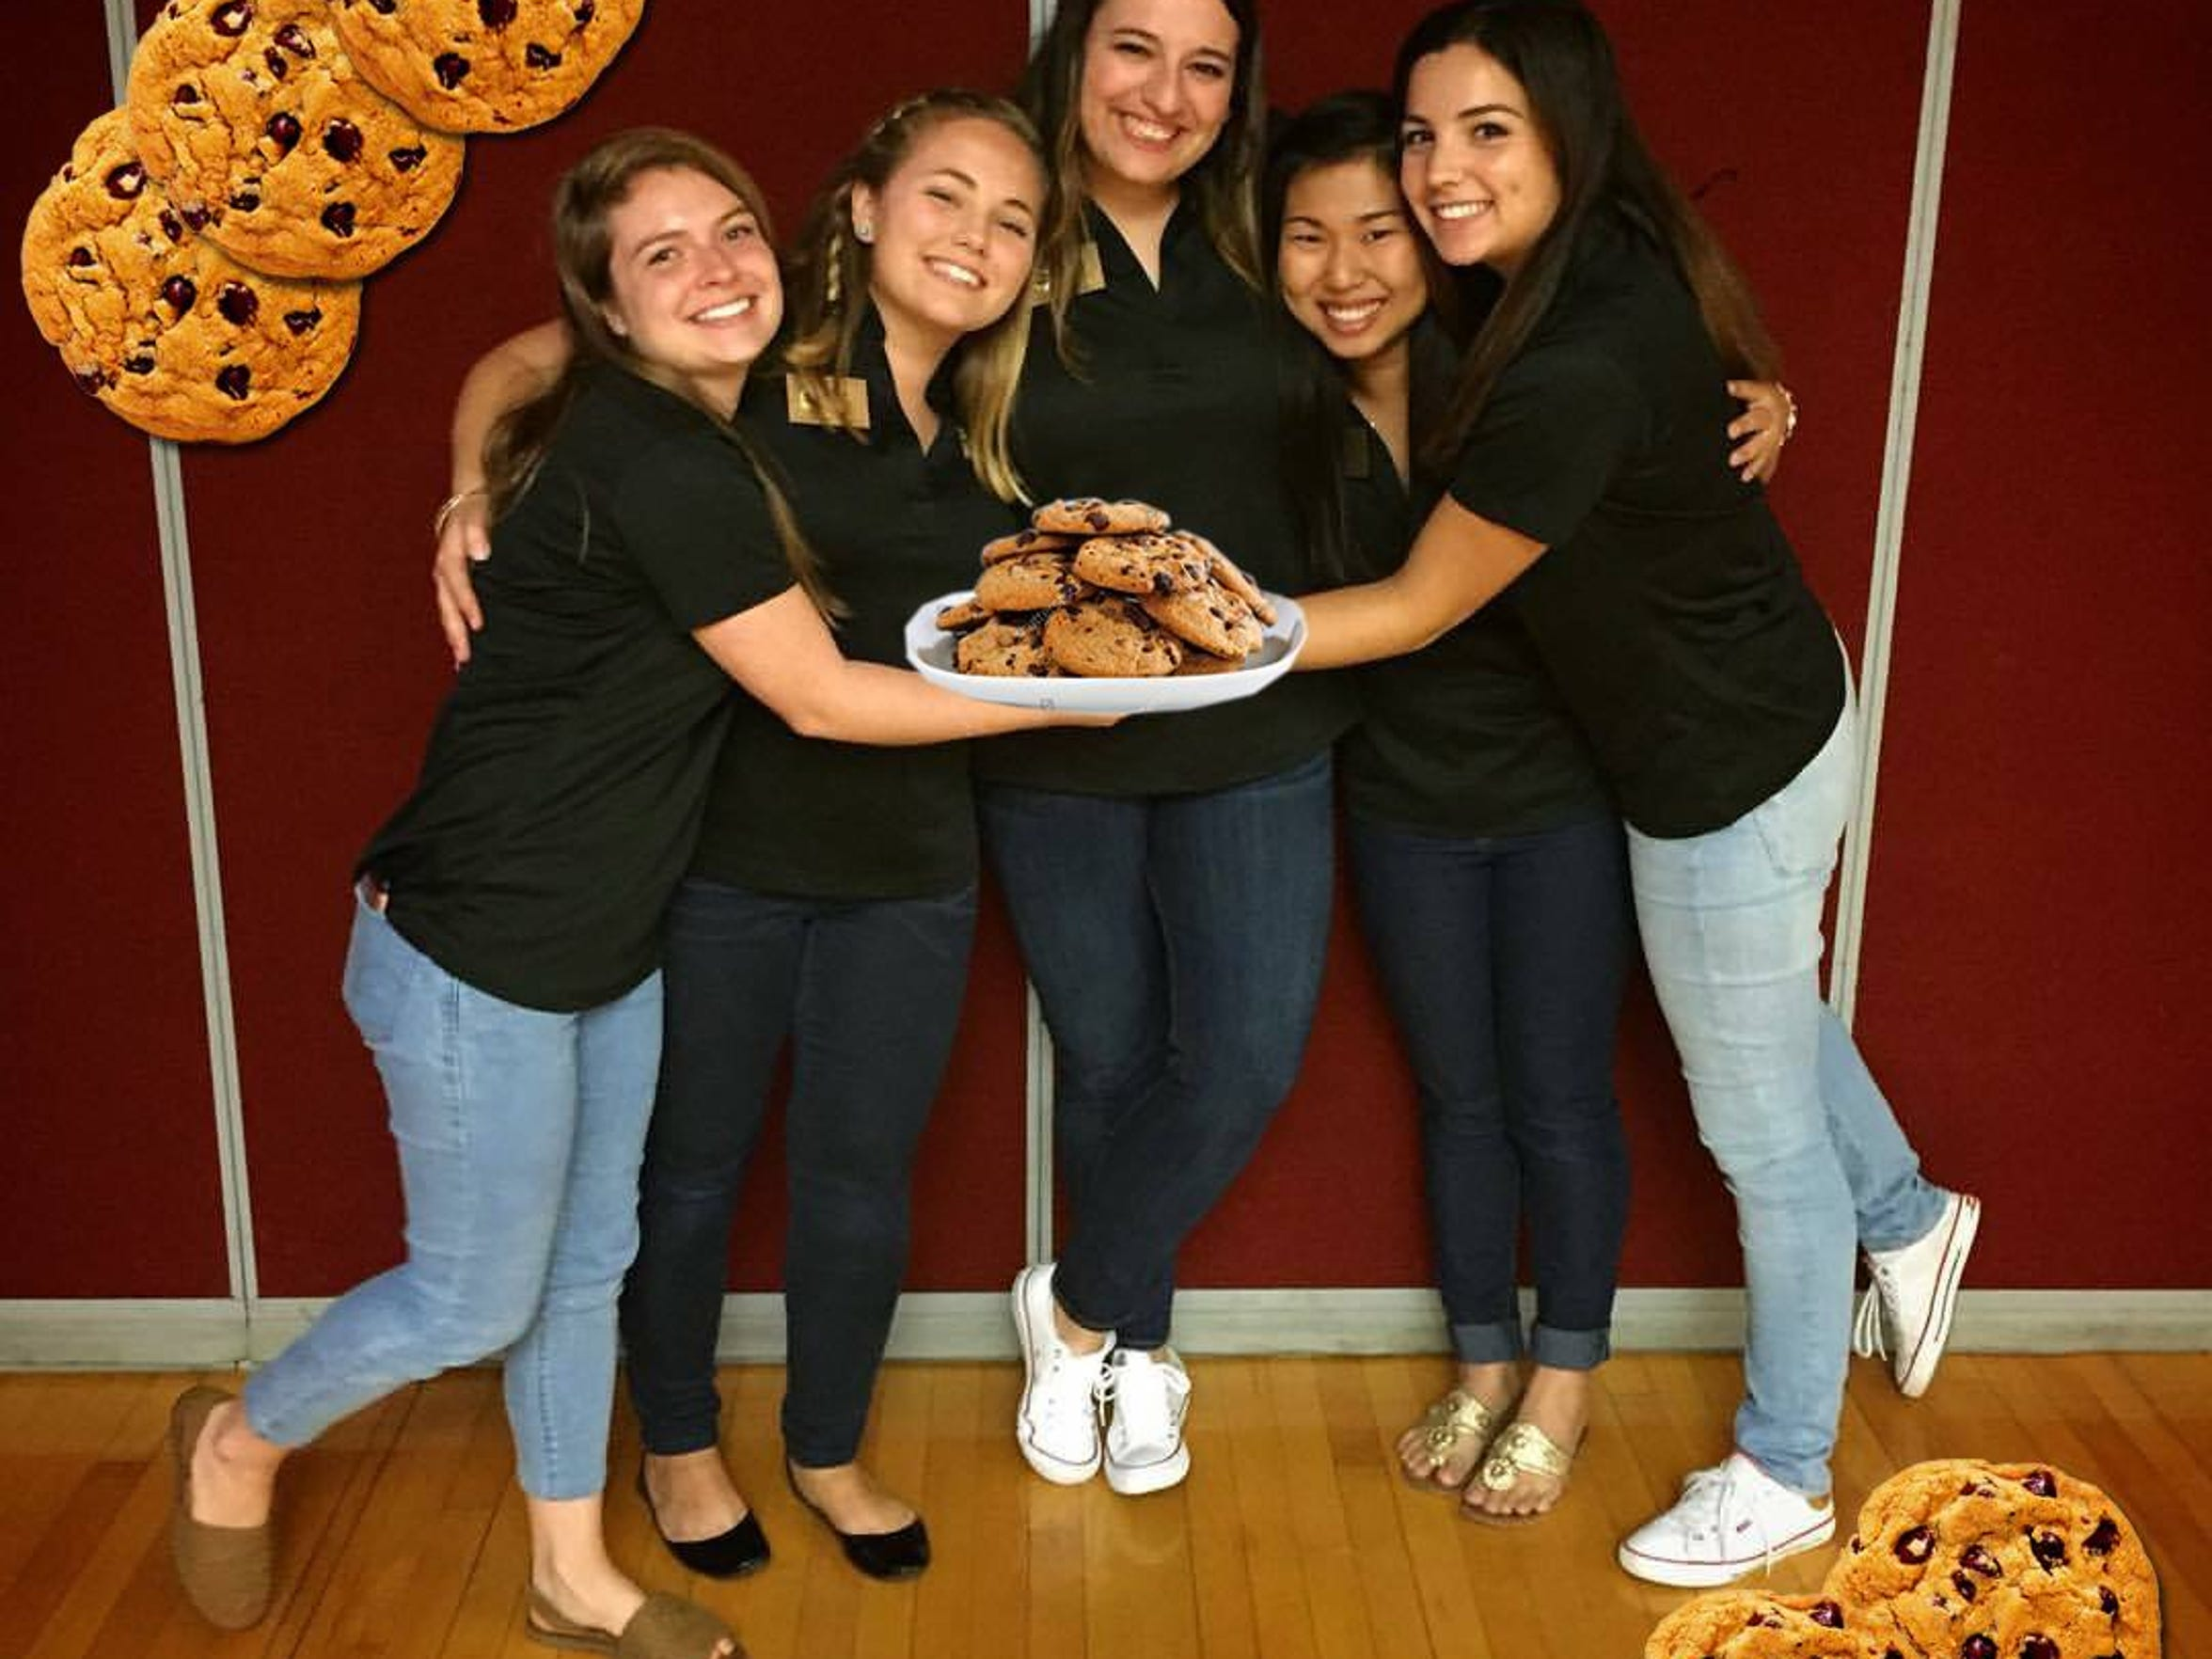 'Cookies and Conversation' allowed students to meet